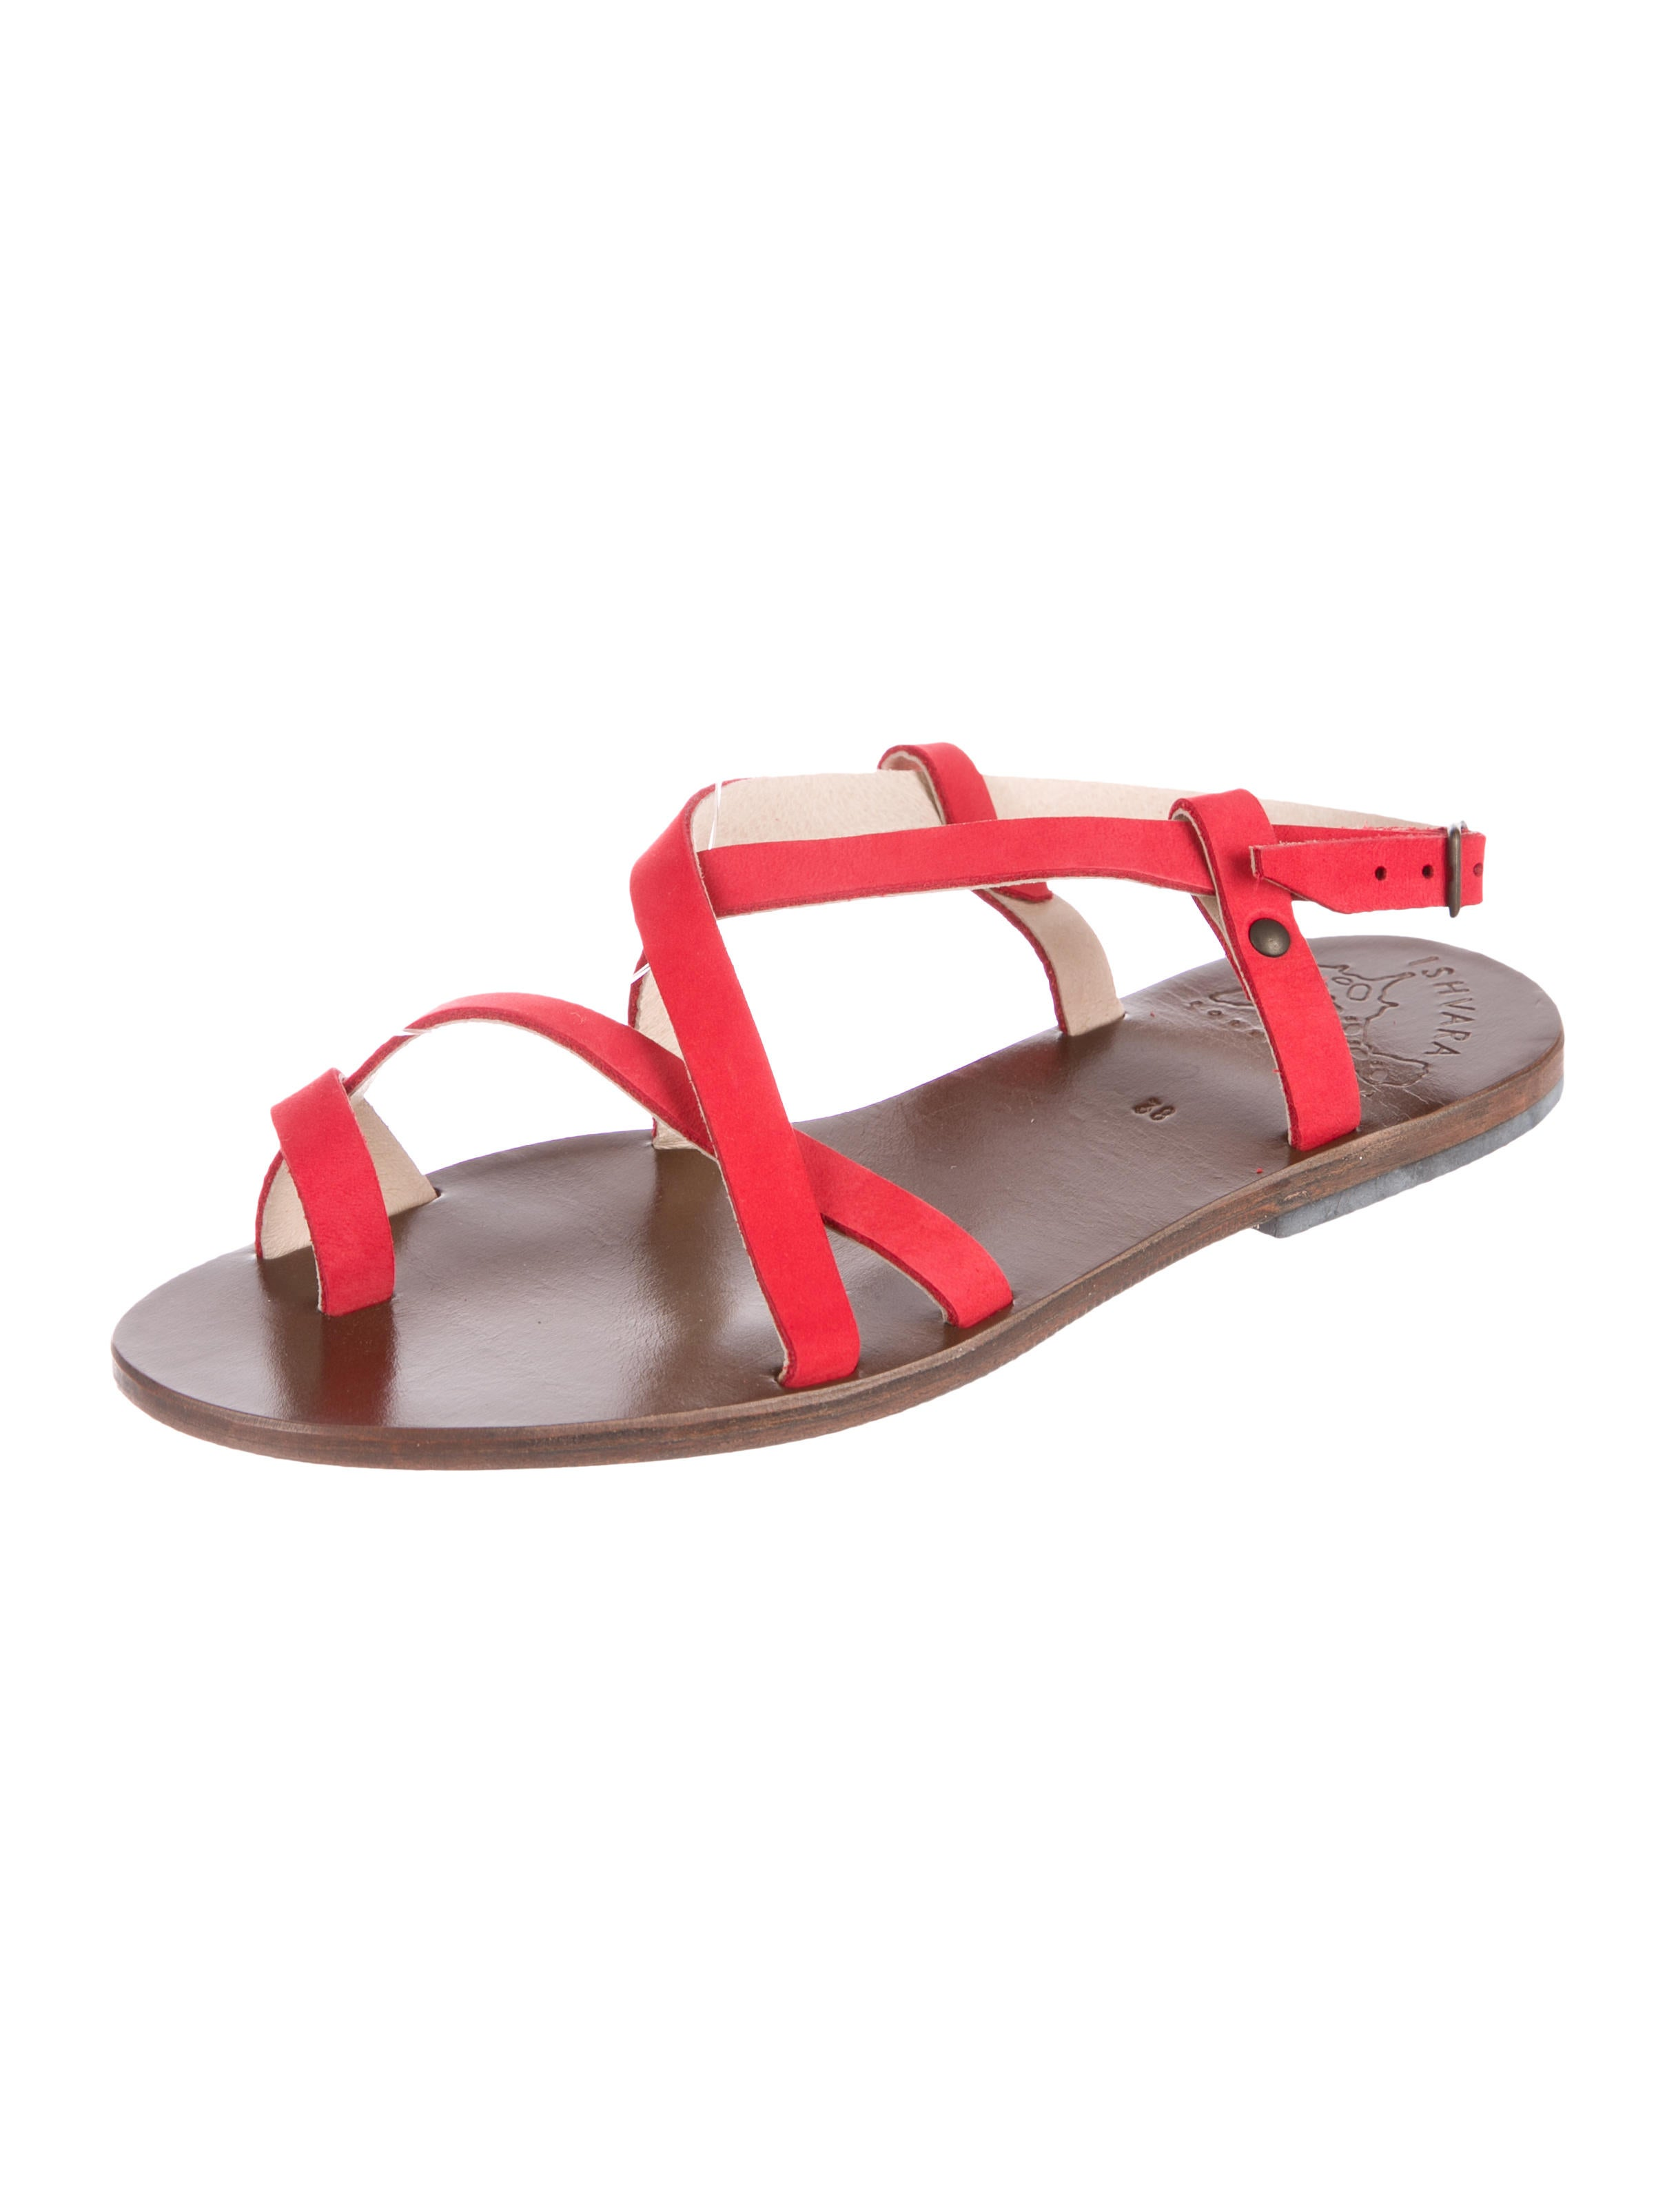 Isharya Ibiza Suede Sandals shipping discount authentic hot sale cheap online free shipping low cost clearance deals WEl95WByL